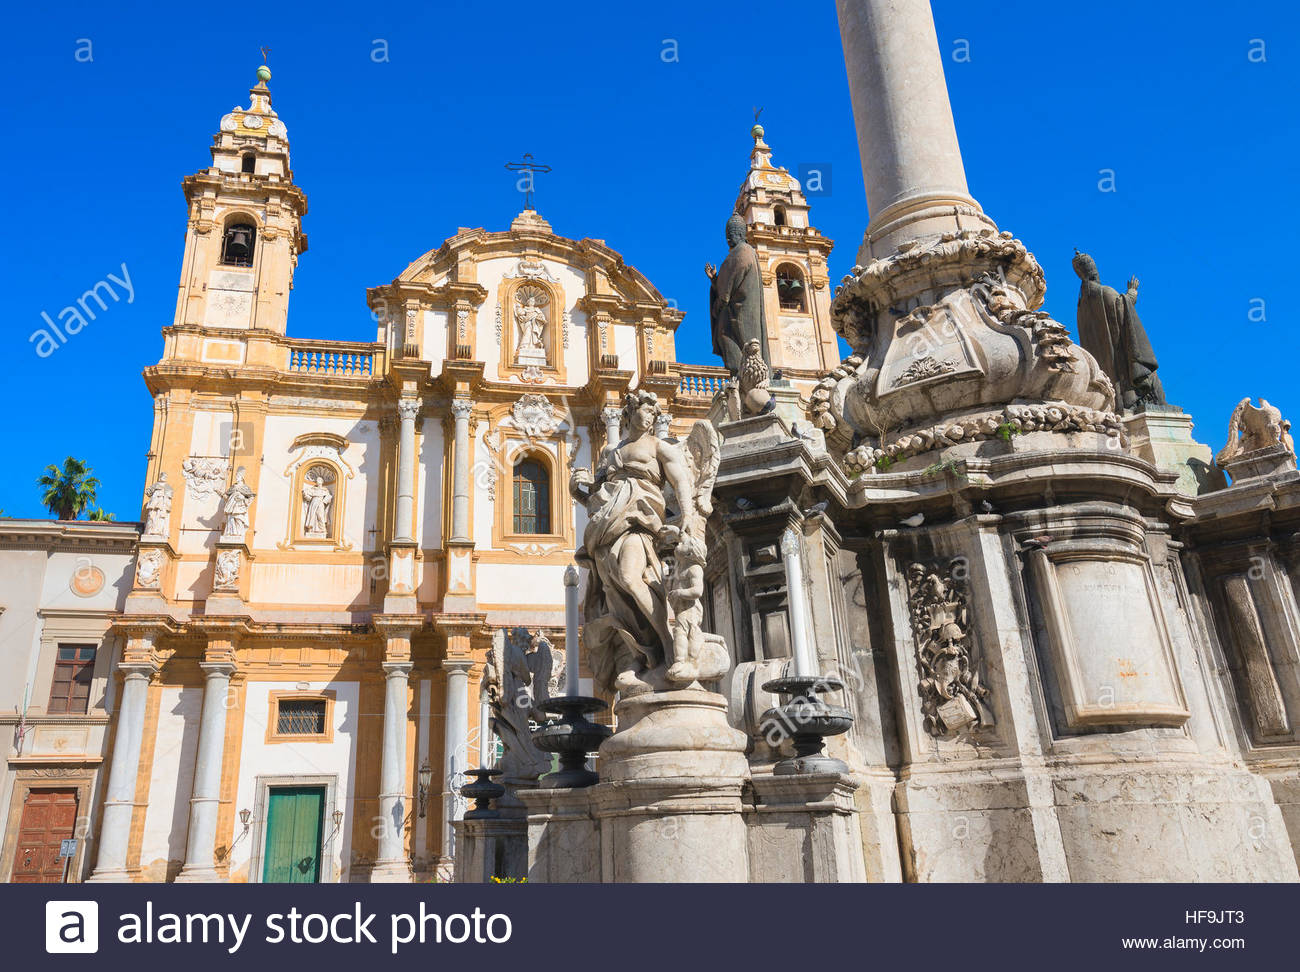 Église de San Domenico, Palerme, Sicile, Italie, Europe, Photo Stock